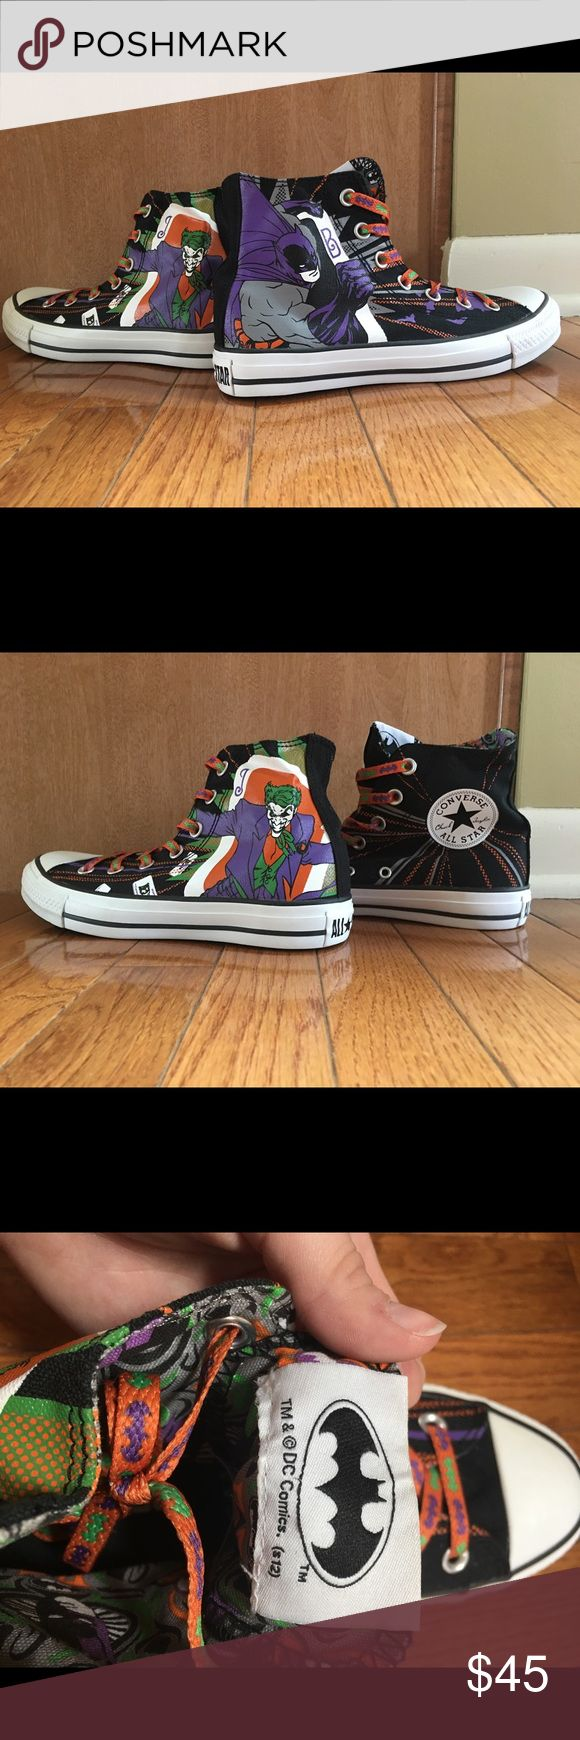 Selling this Converse DC Comics Batman/Joker High-Tops on Poshmark! My username is: miranic. #shopmycloset #poshmark #fashion #shopping #style #forsale #Converse #Shoes